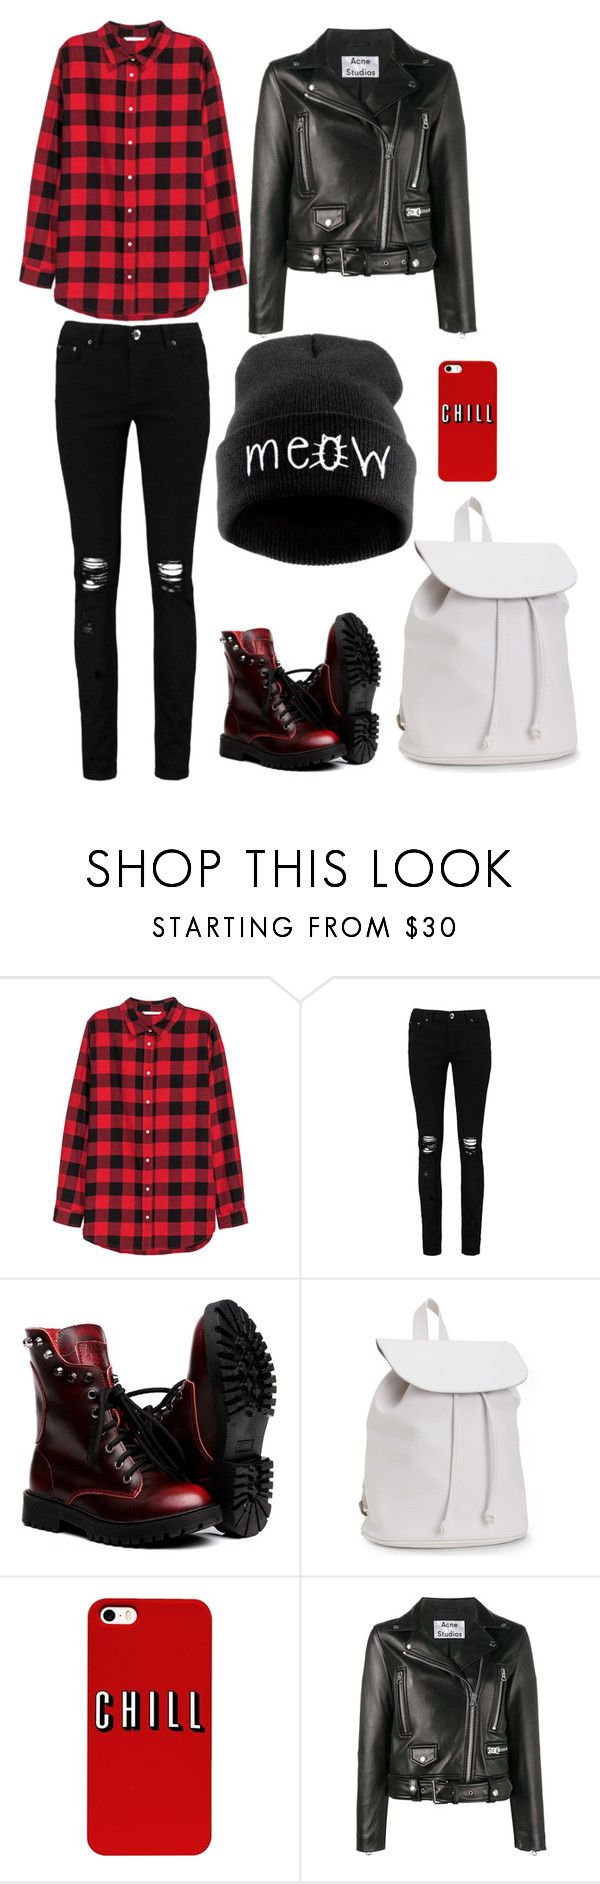 Red plaid and leather jacket outfit by jellyray on Polyvore featuring H&M, Acne Studios, Boohoo and Aéropostale